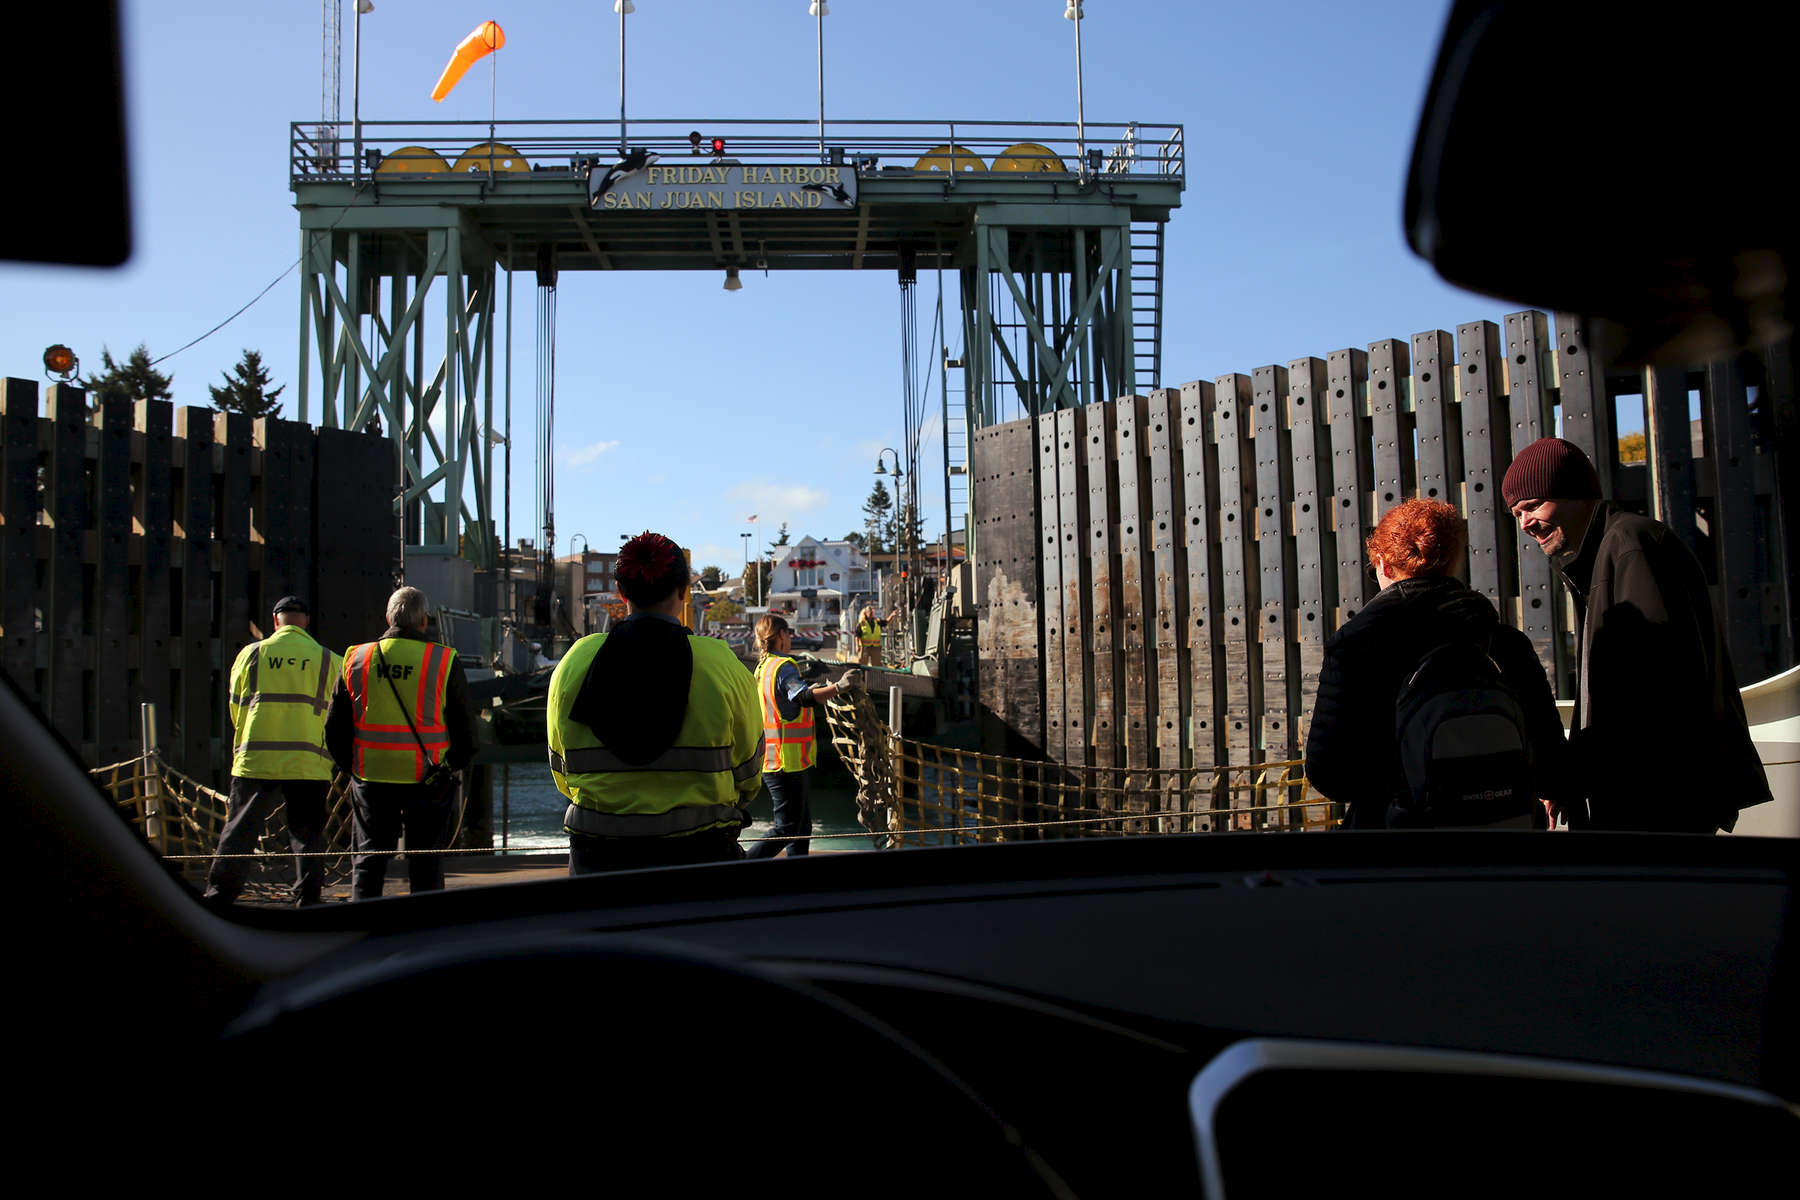 Guests wait nearby as ferry workers prepare to dock at Friday Harbor on San Juan Island, Wash.